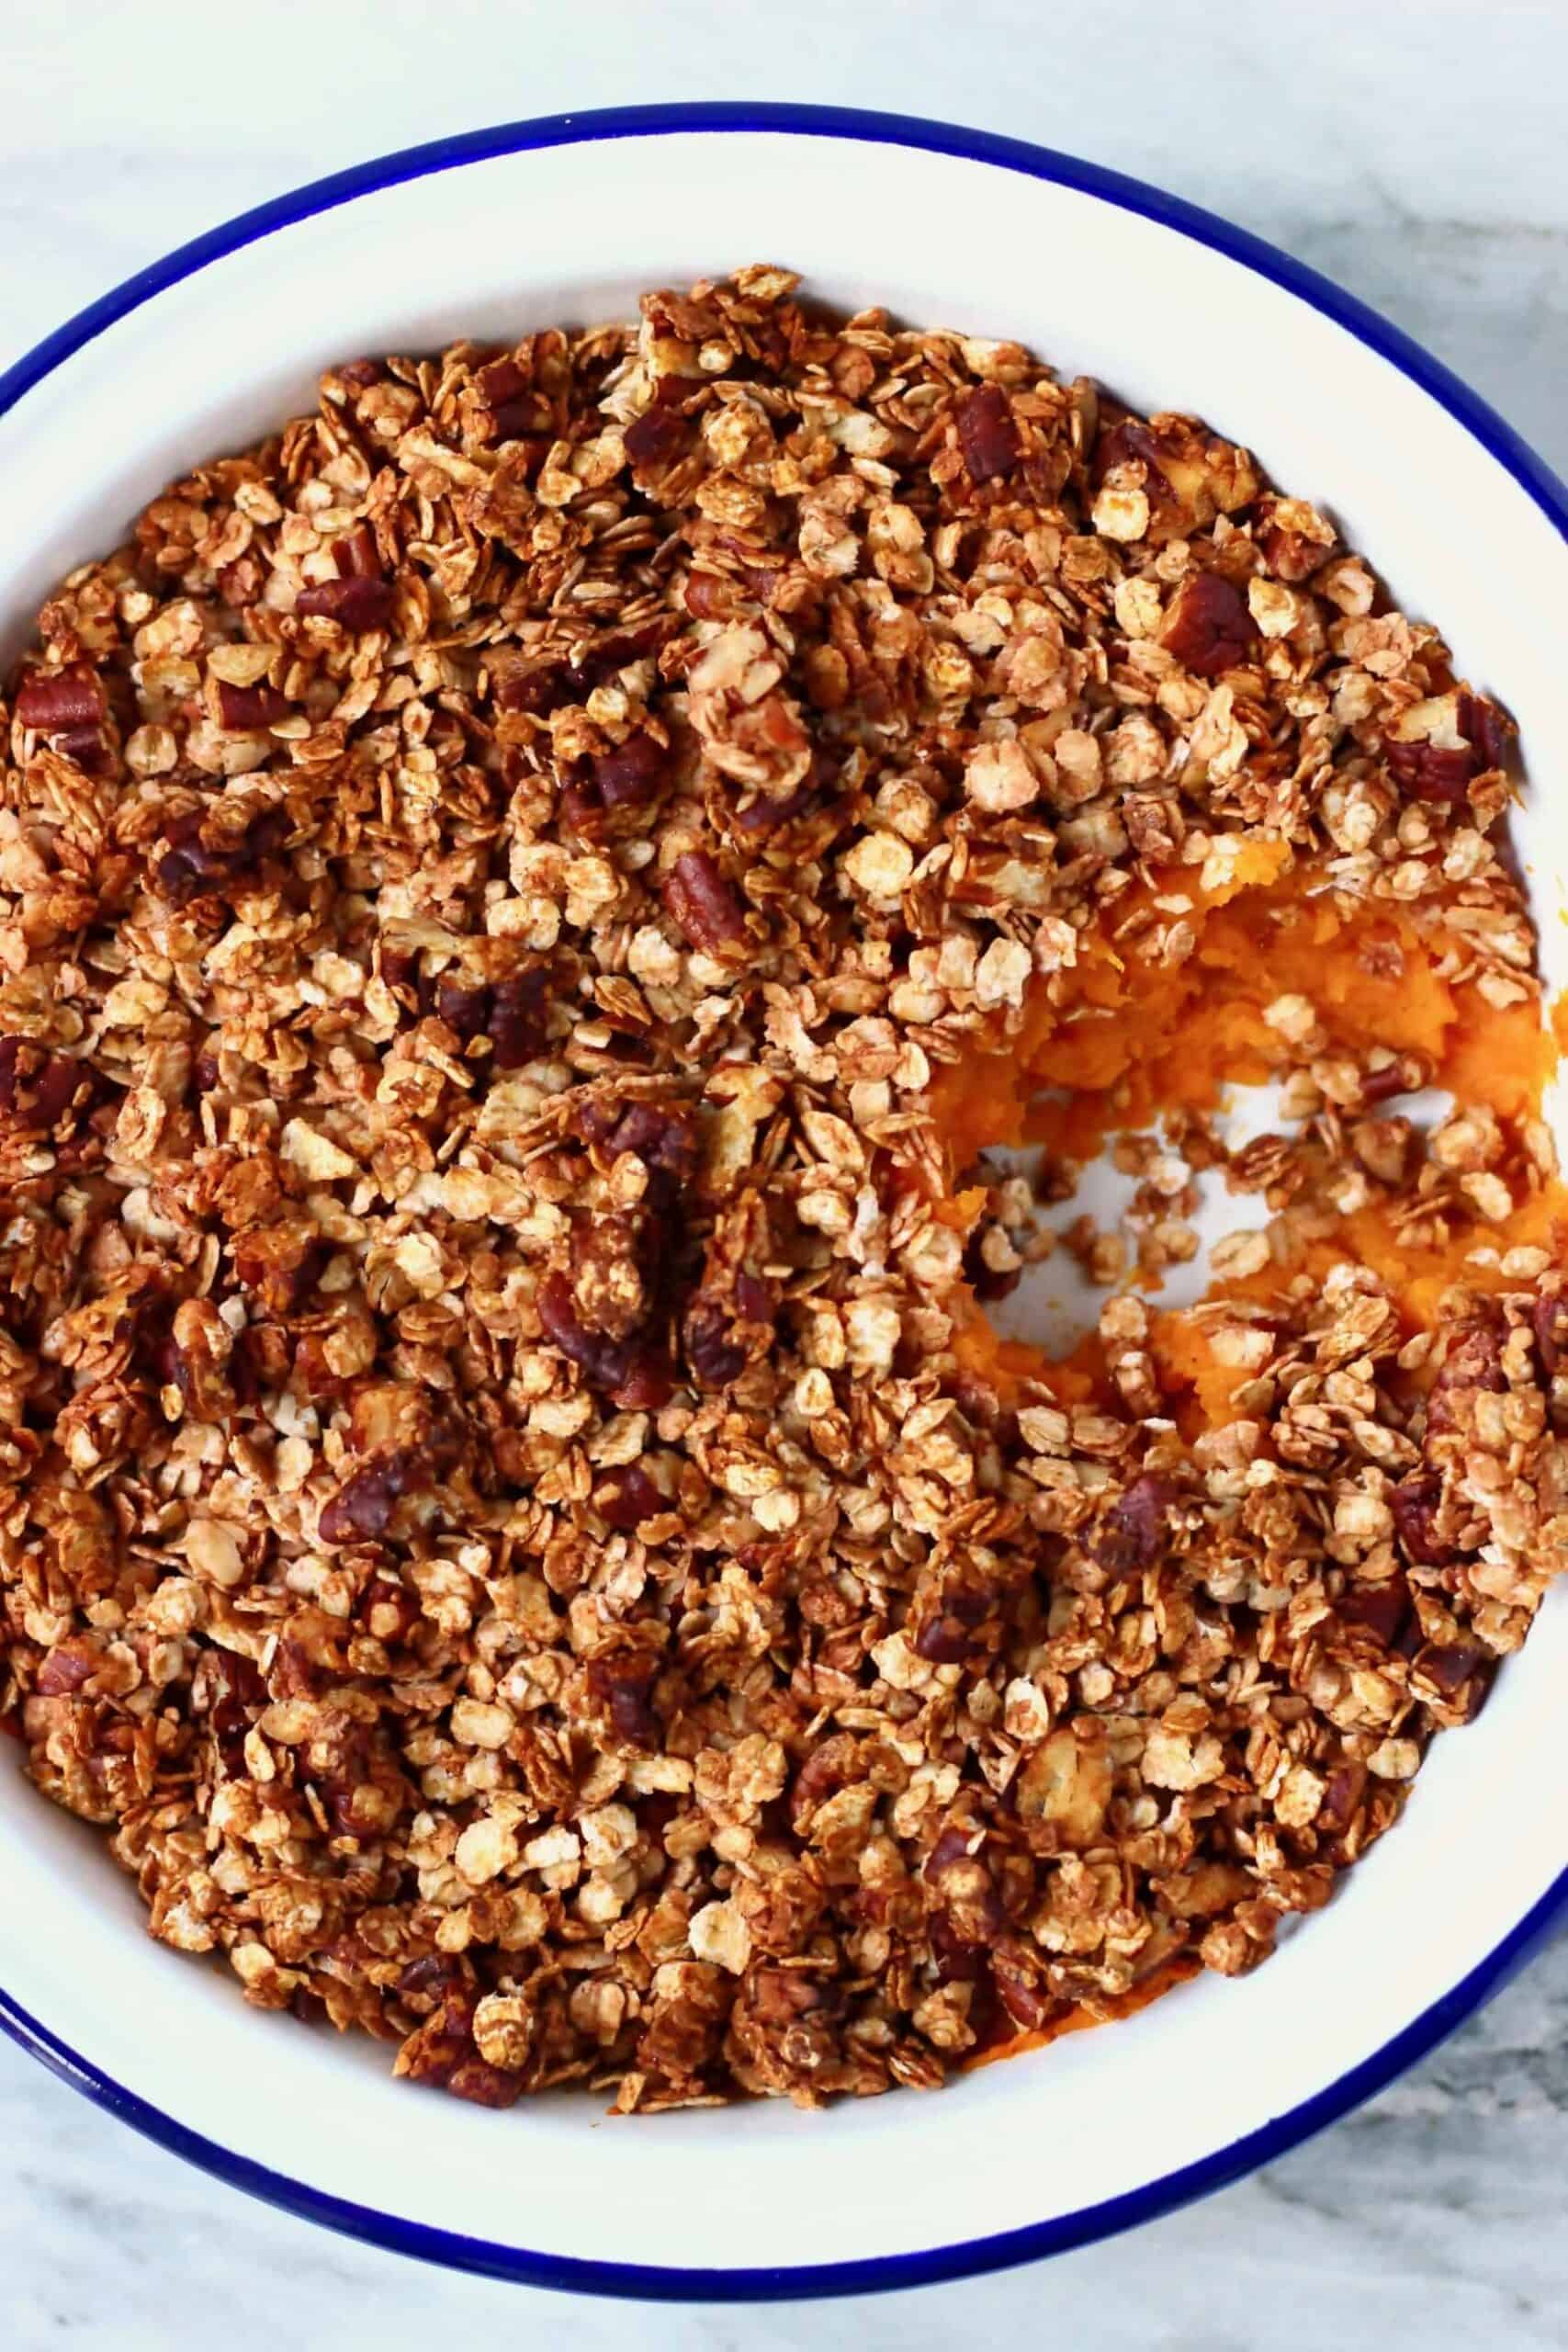 Vegan sweet potato casserole in a pie dish with a mouthful taken out of it